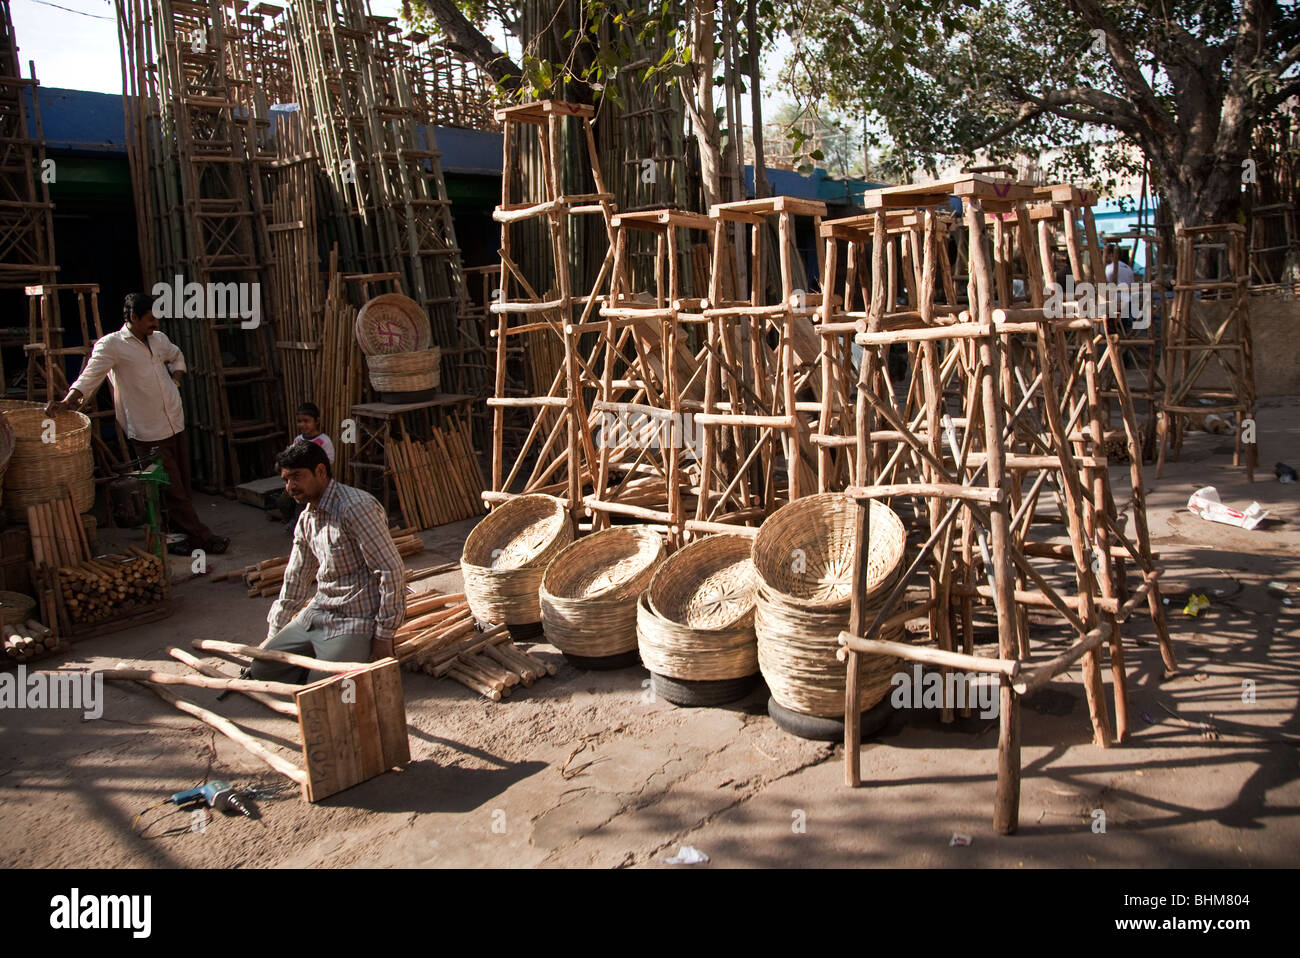 A furniture market in the Rajasthani city of Jodhpur India - Stock Image